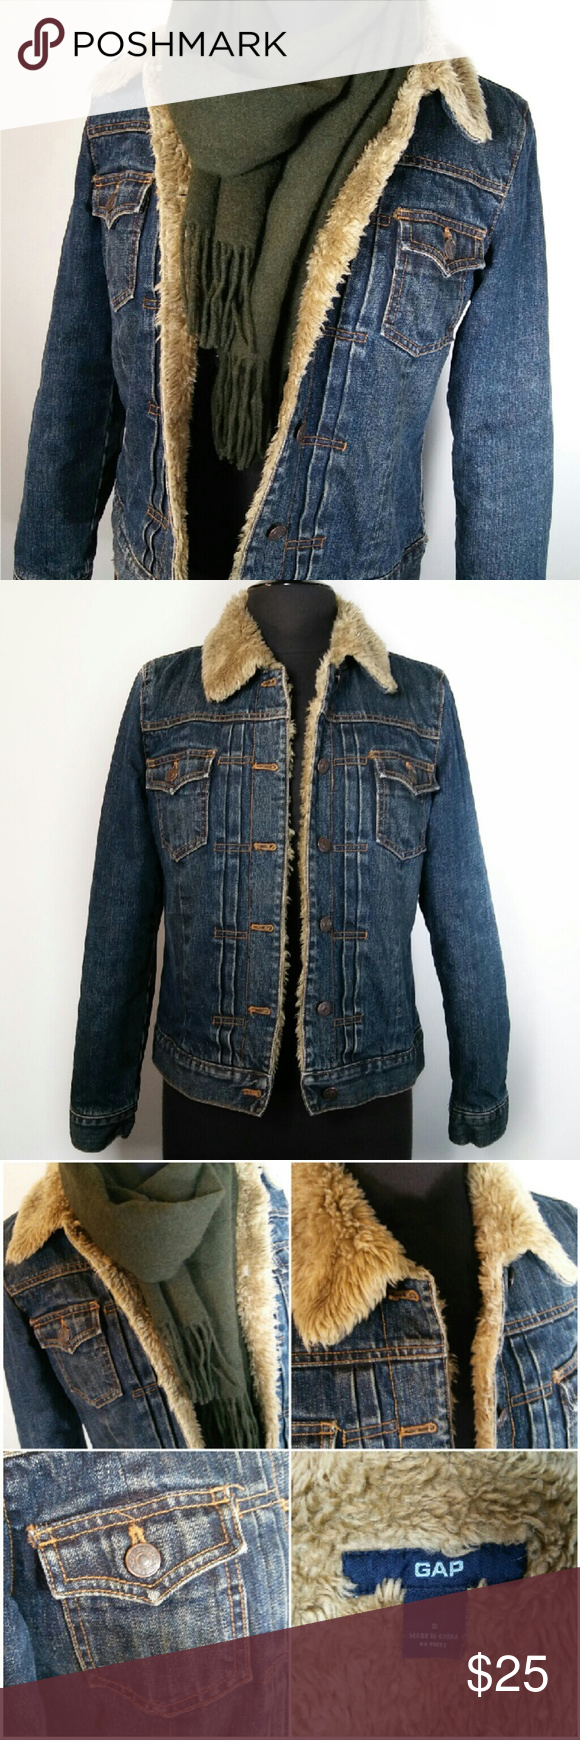 Trendy sherpa lined denim jean jacket welt pocket indigo blue and